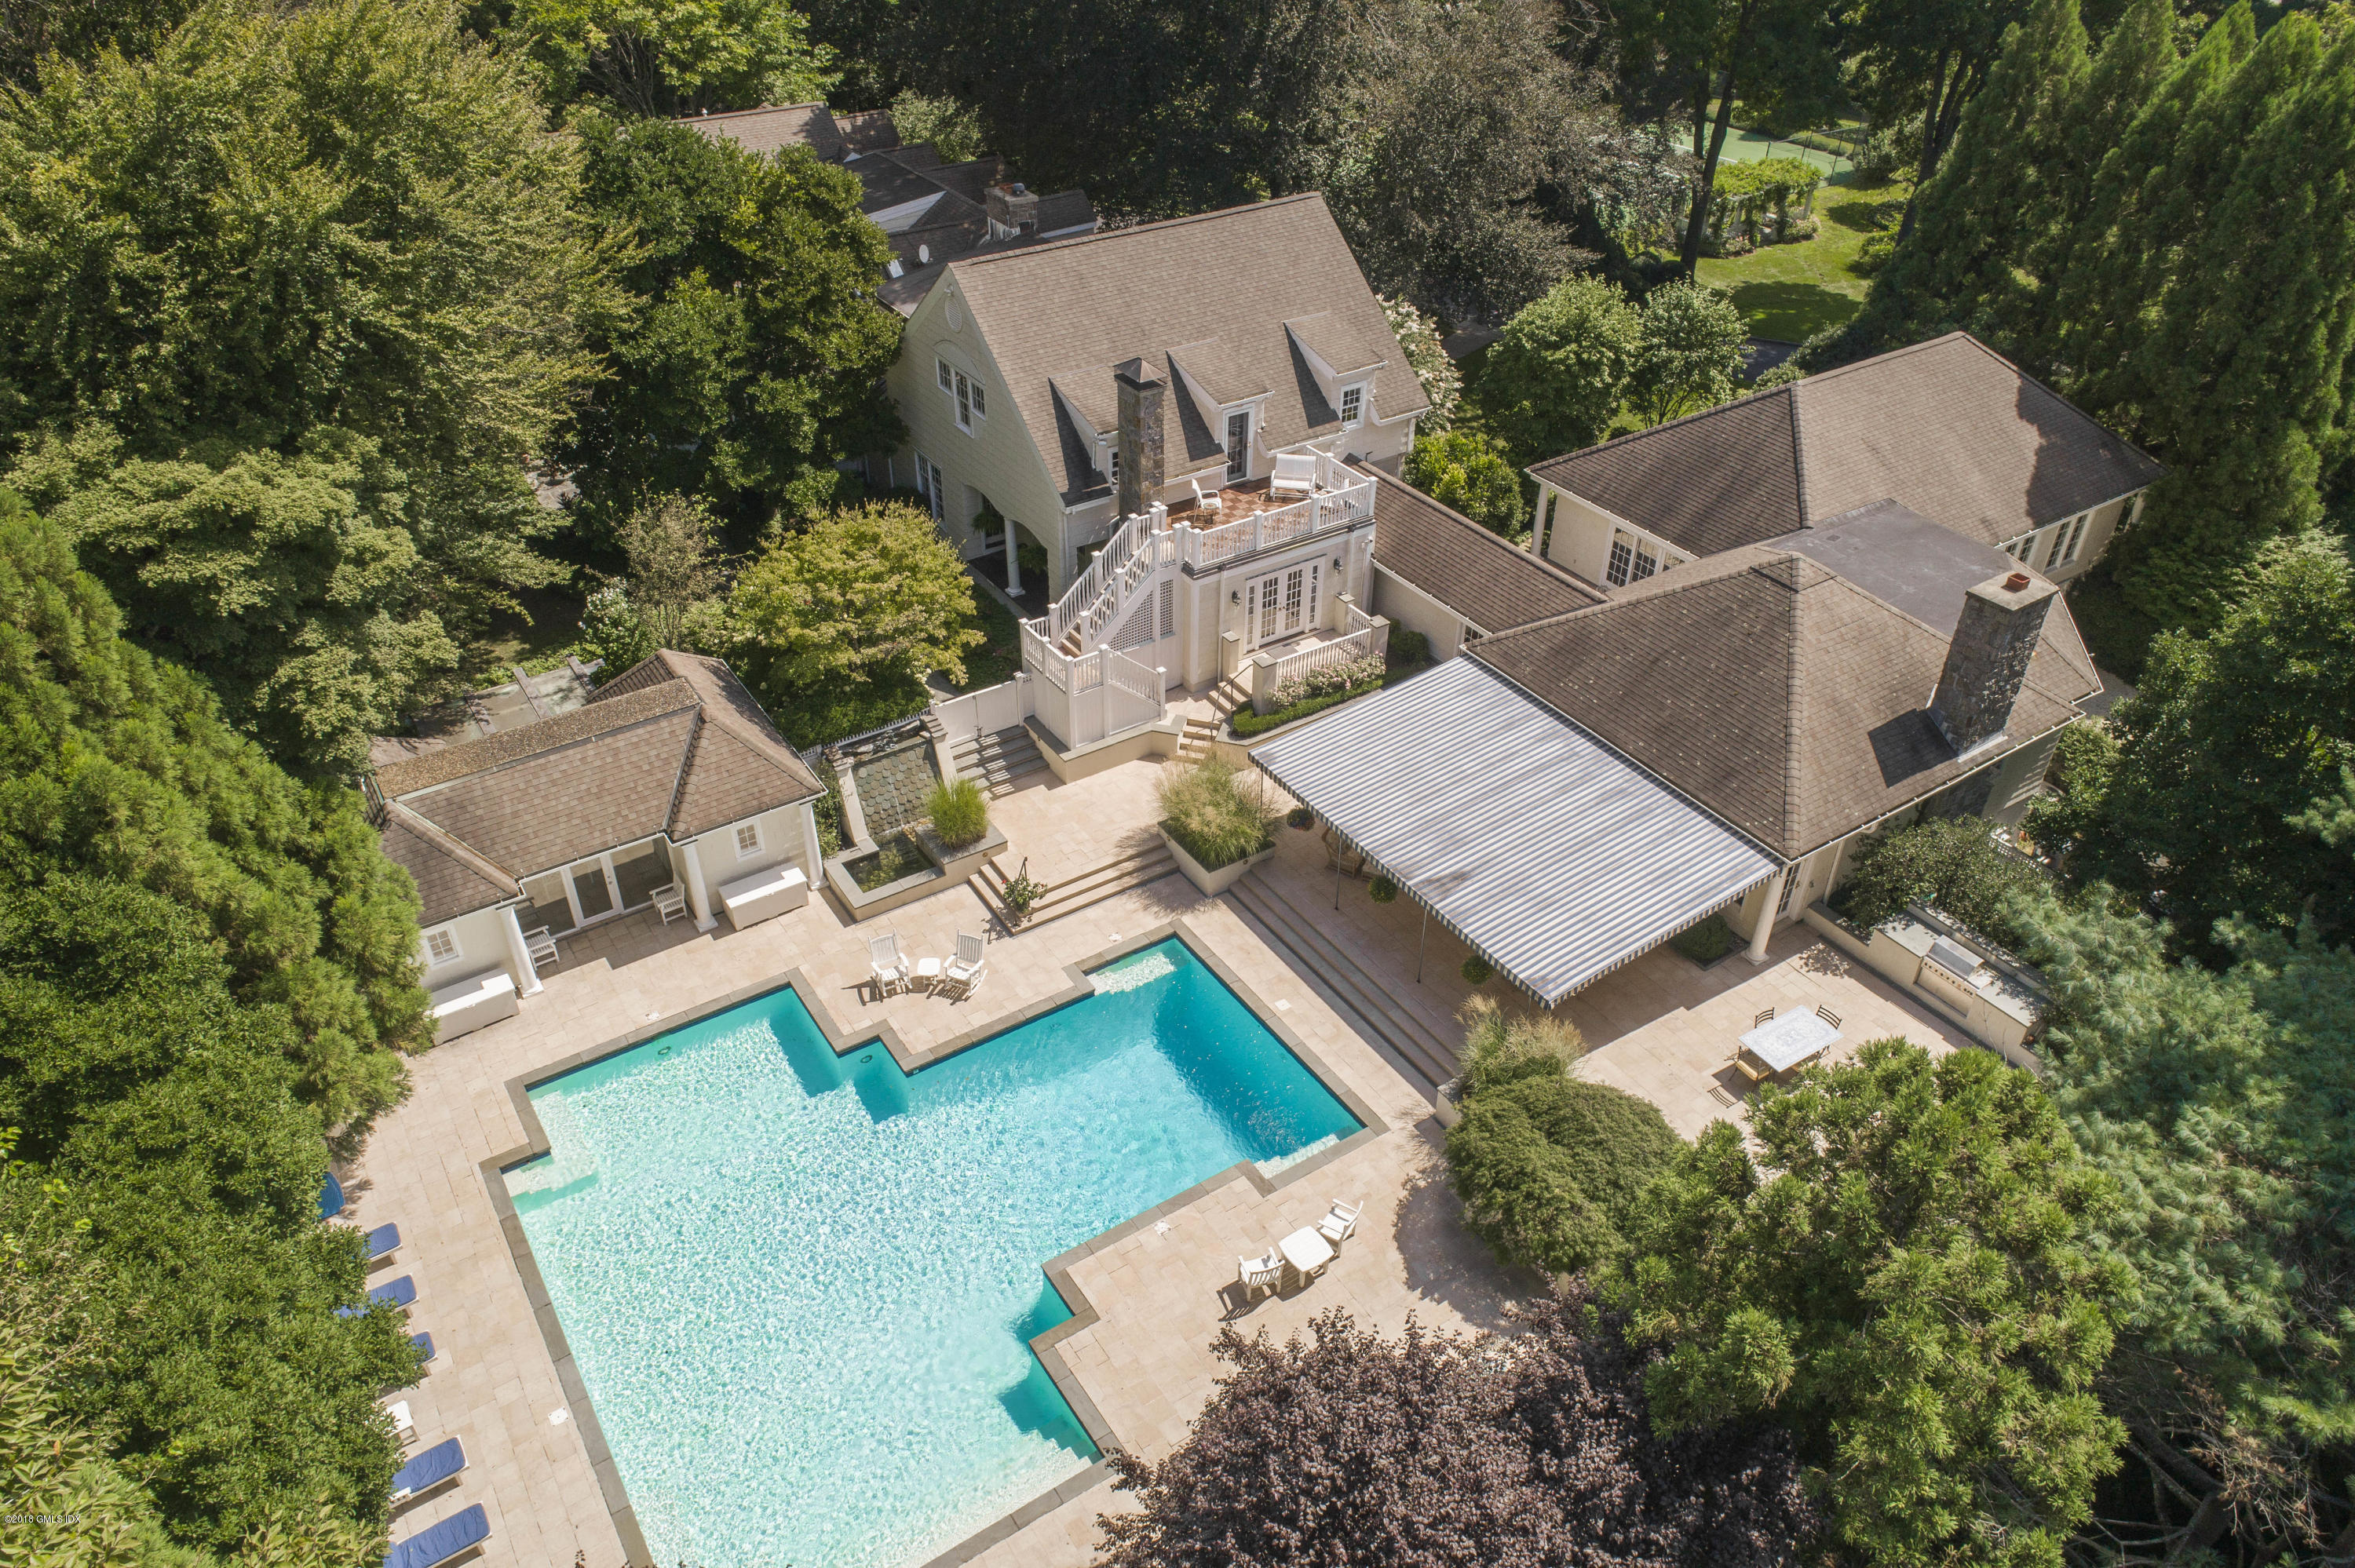 1 Winding Lane,Greenwich,Connecticut 06831,5 Bedrooms Bedrooms,5 BathroomsBathrooms,Single family,Winding,104351